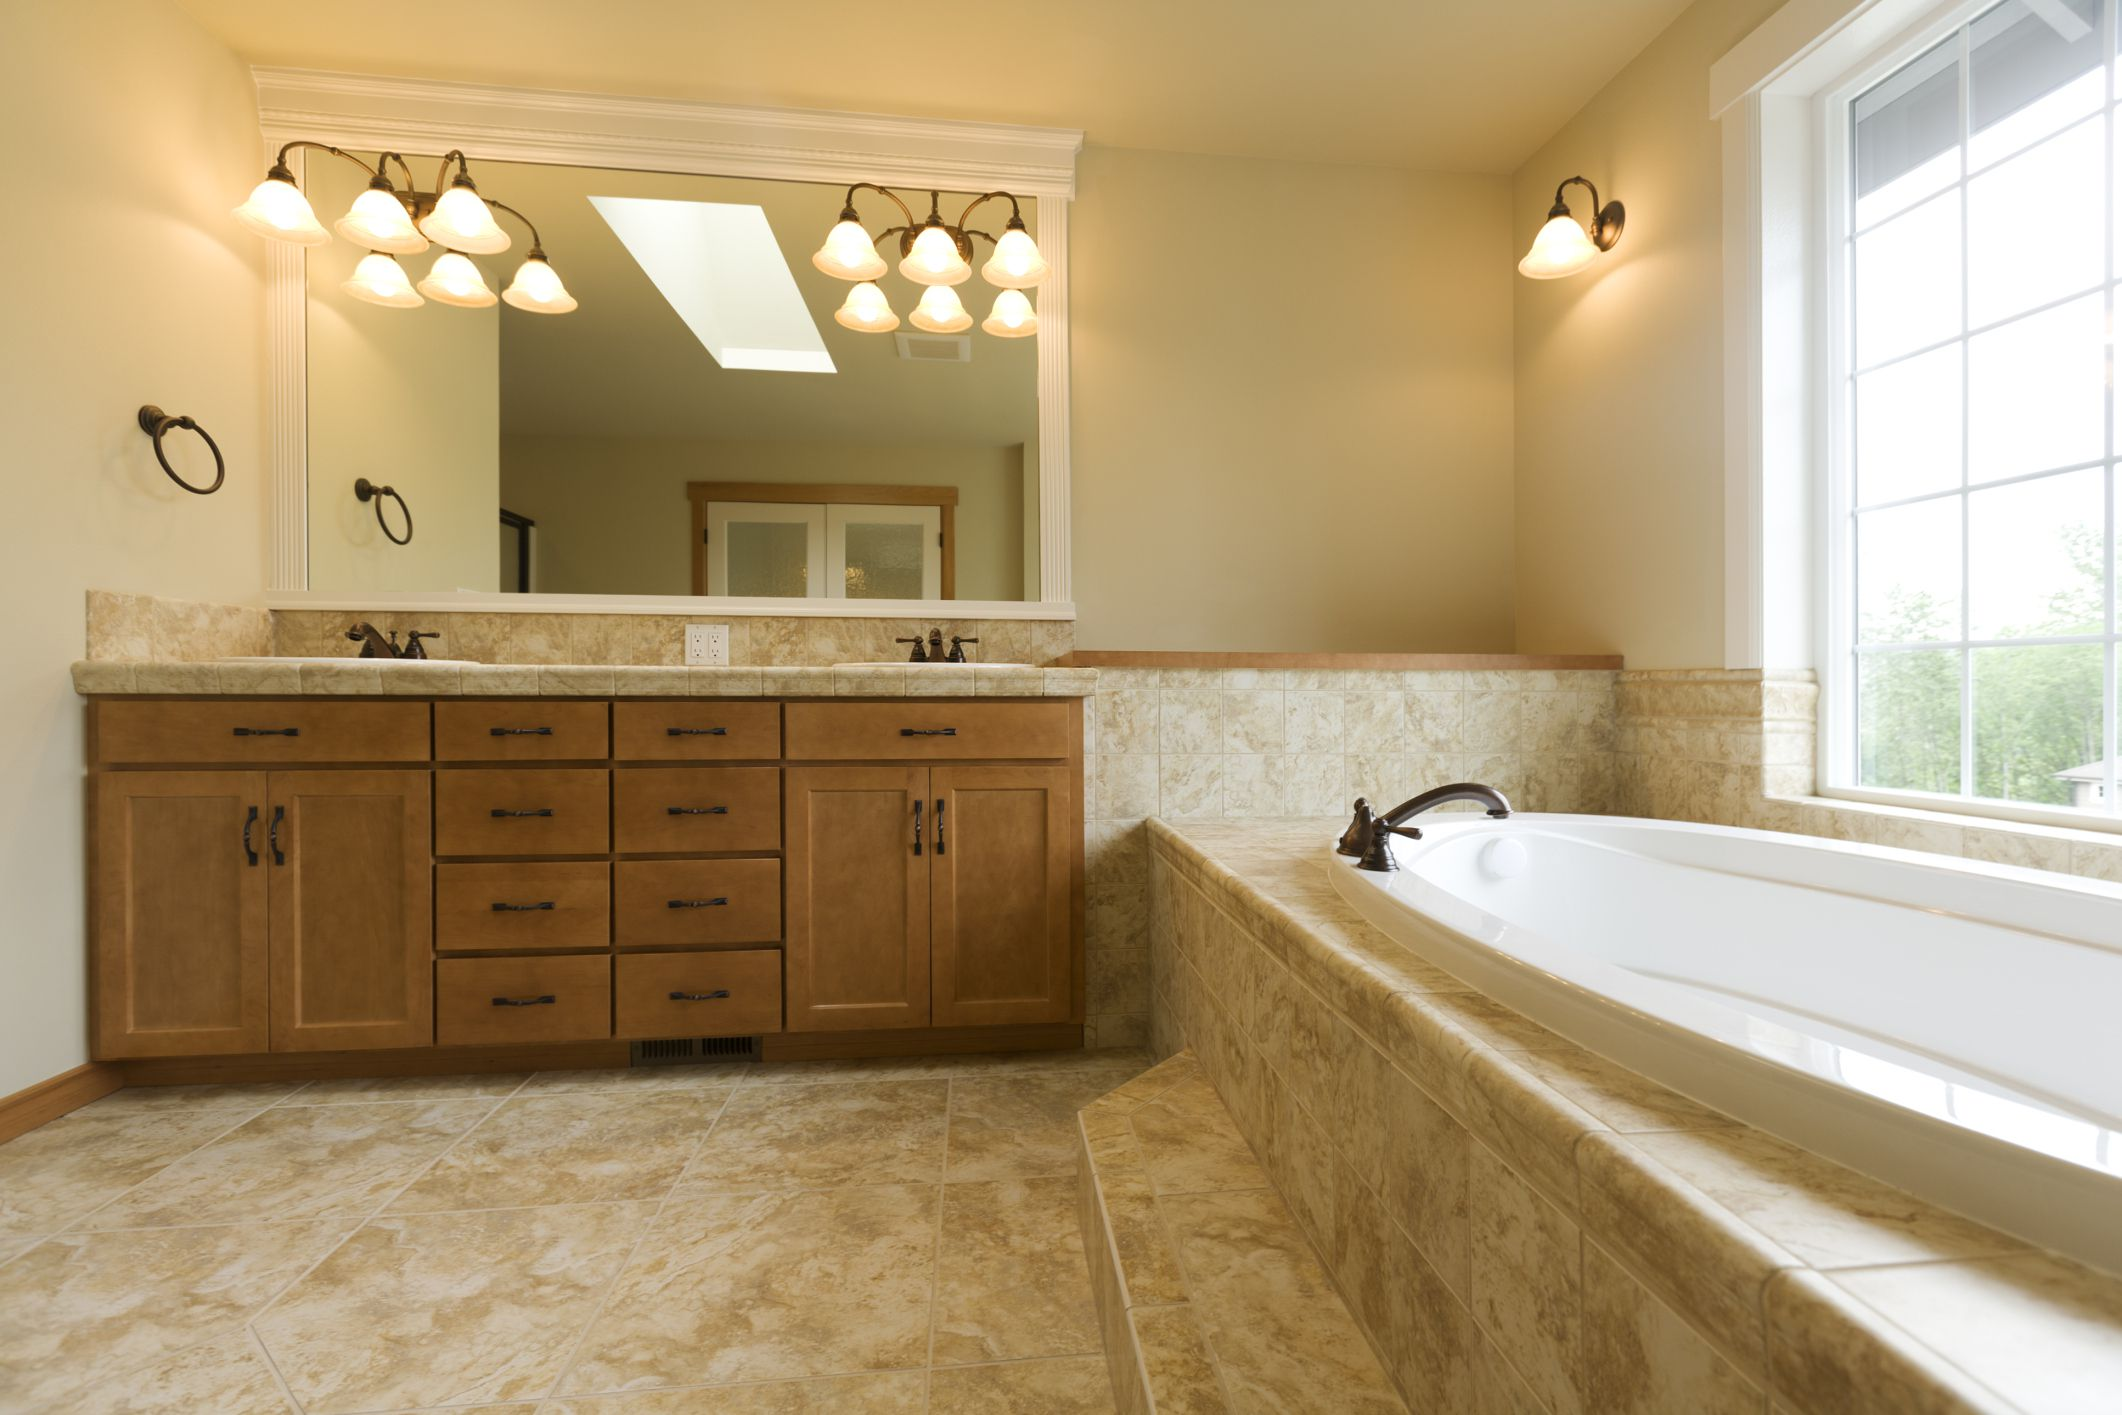 How to replace and install a bathroom vanity and sink - How to install a bathroom vanity ...